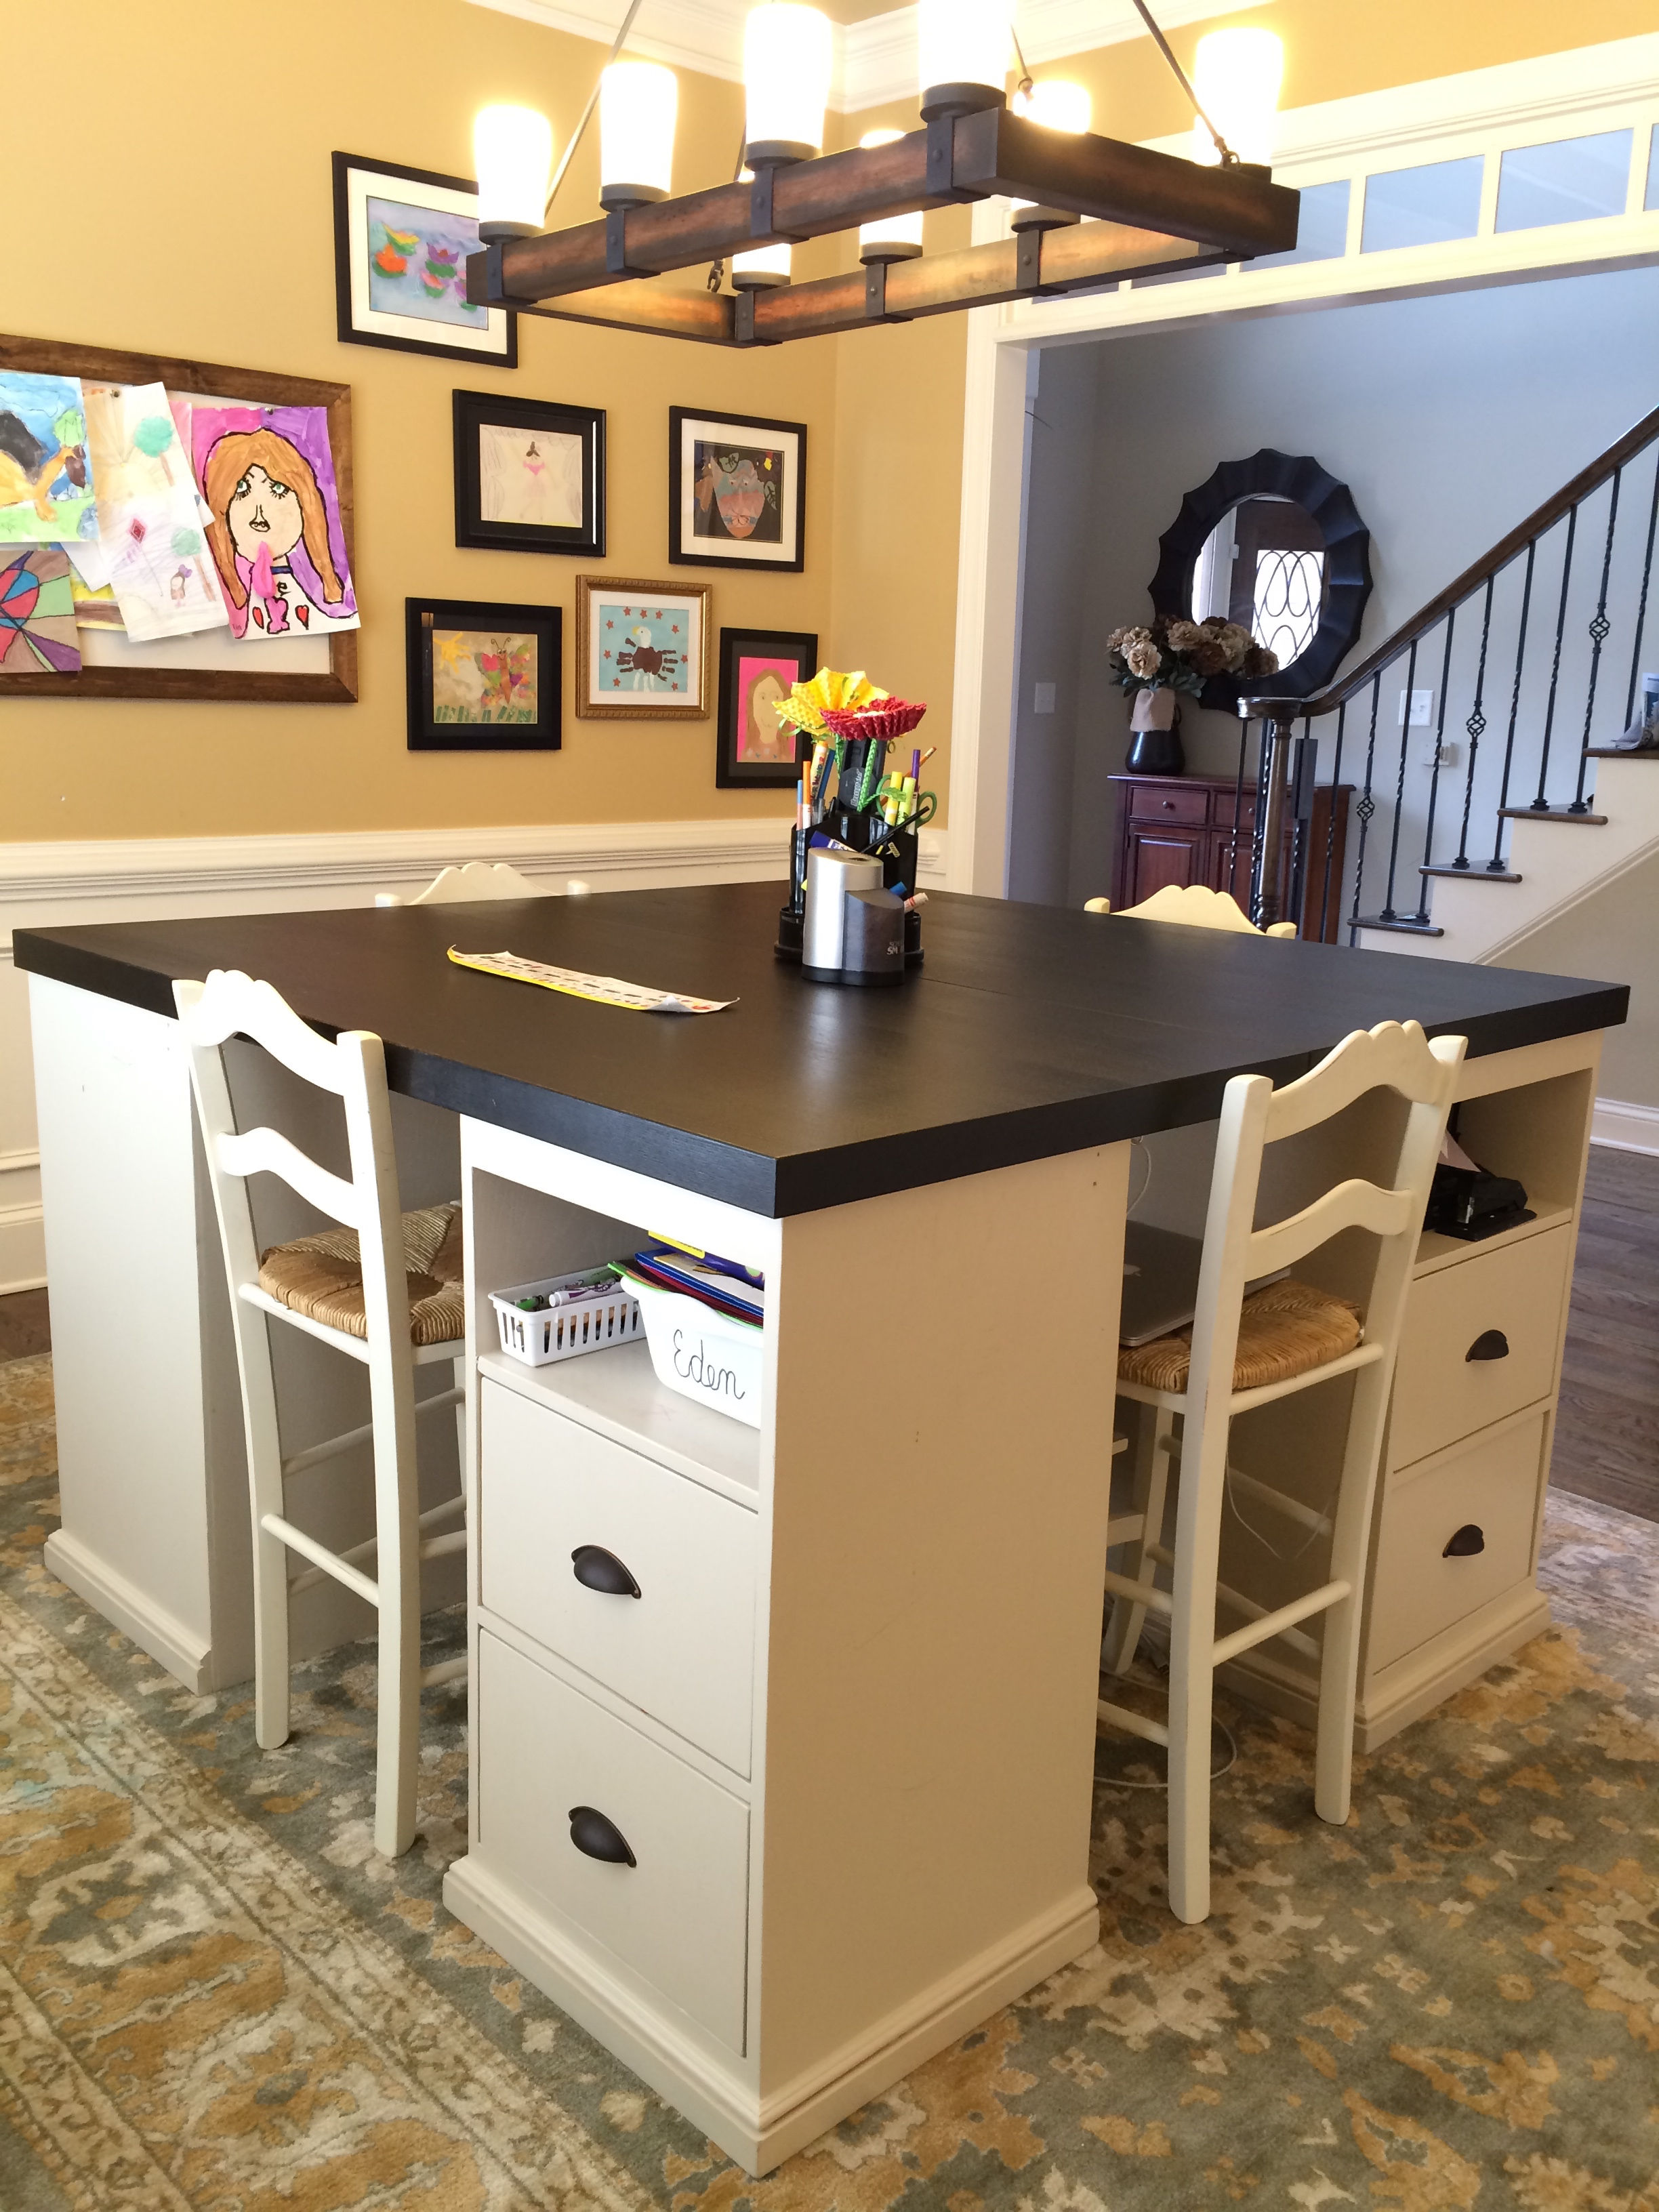 25+ Creative DIY Projects to Make a Craft Table --> How To Build A Four Station Craft Desk